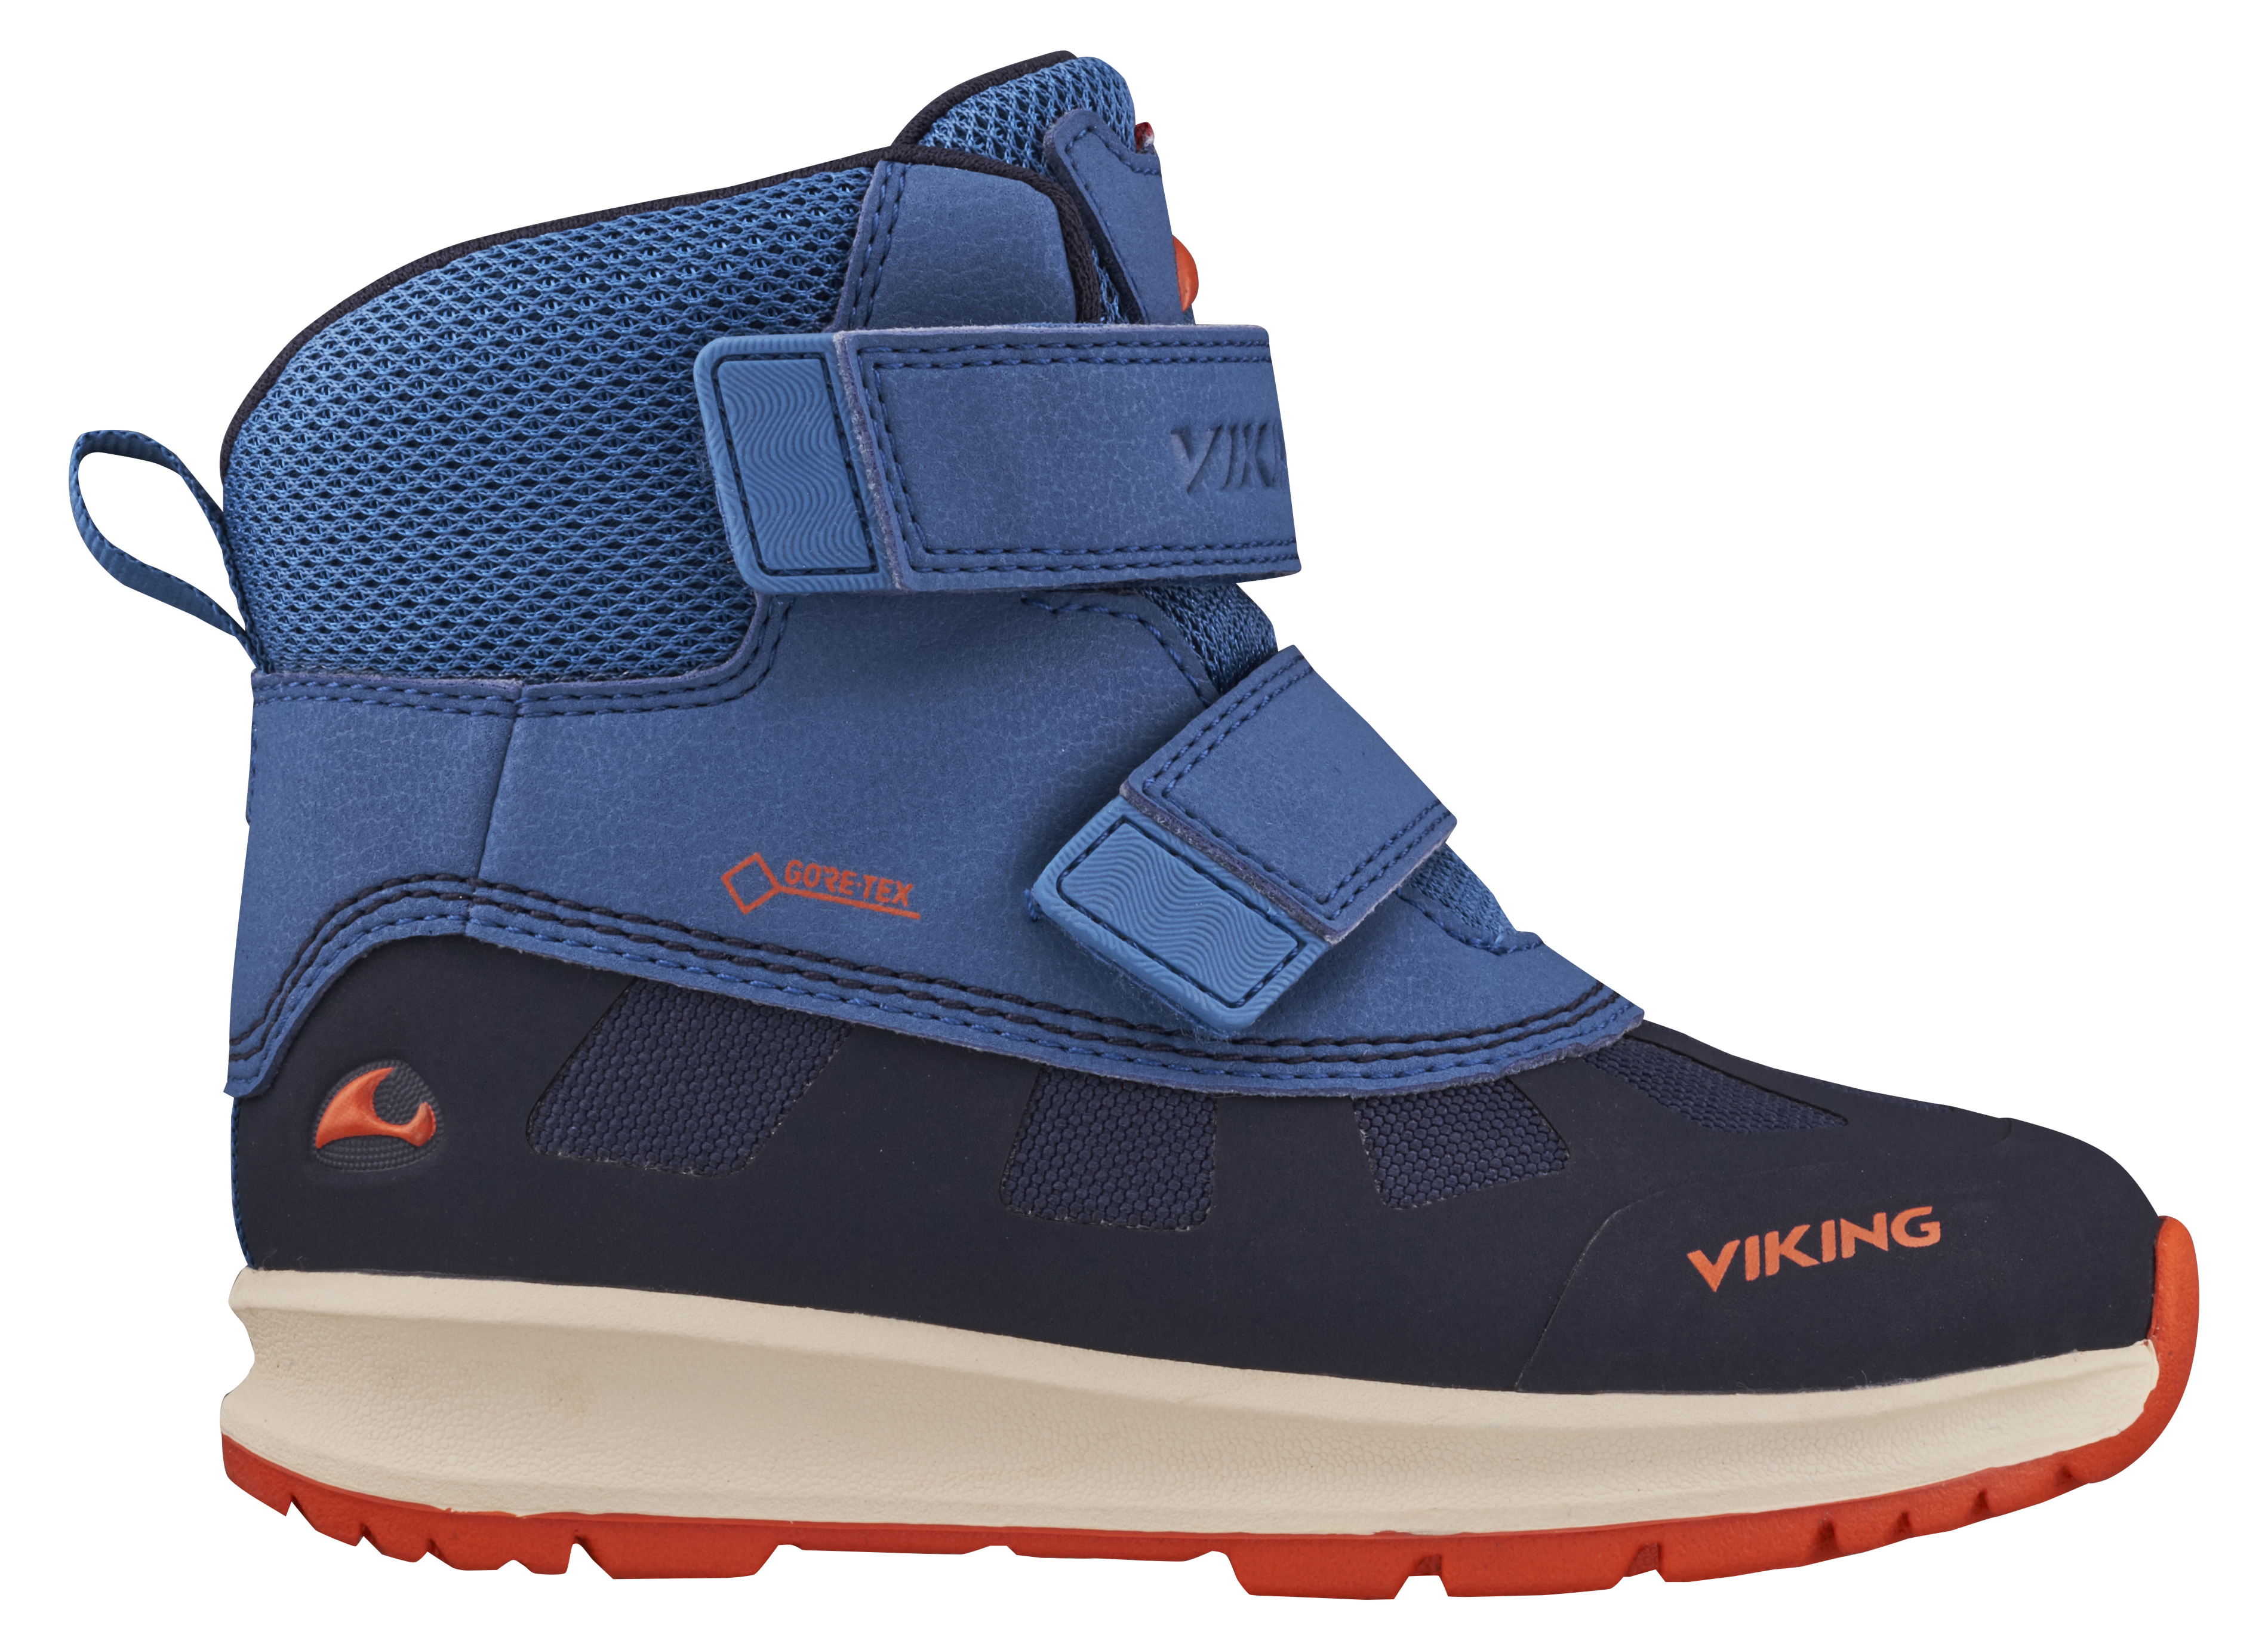 Viking Toby and Ted GTX – Adventuresome cold weather comfort